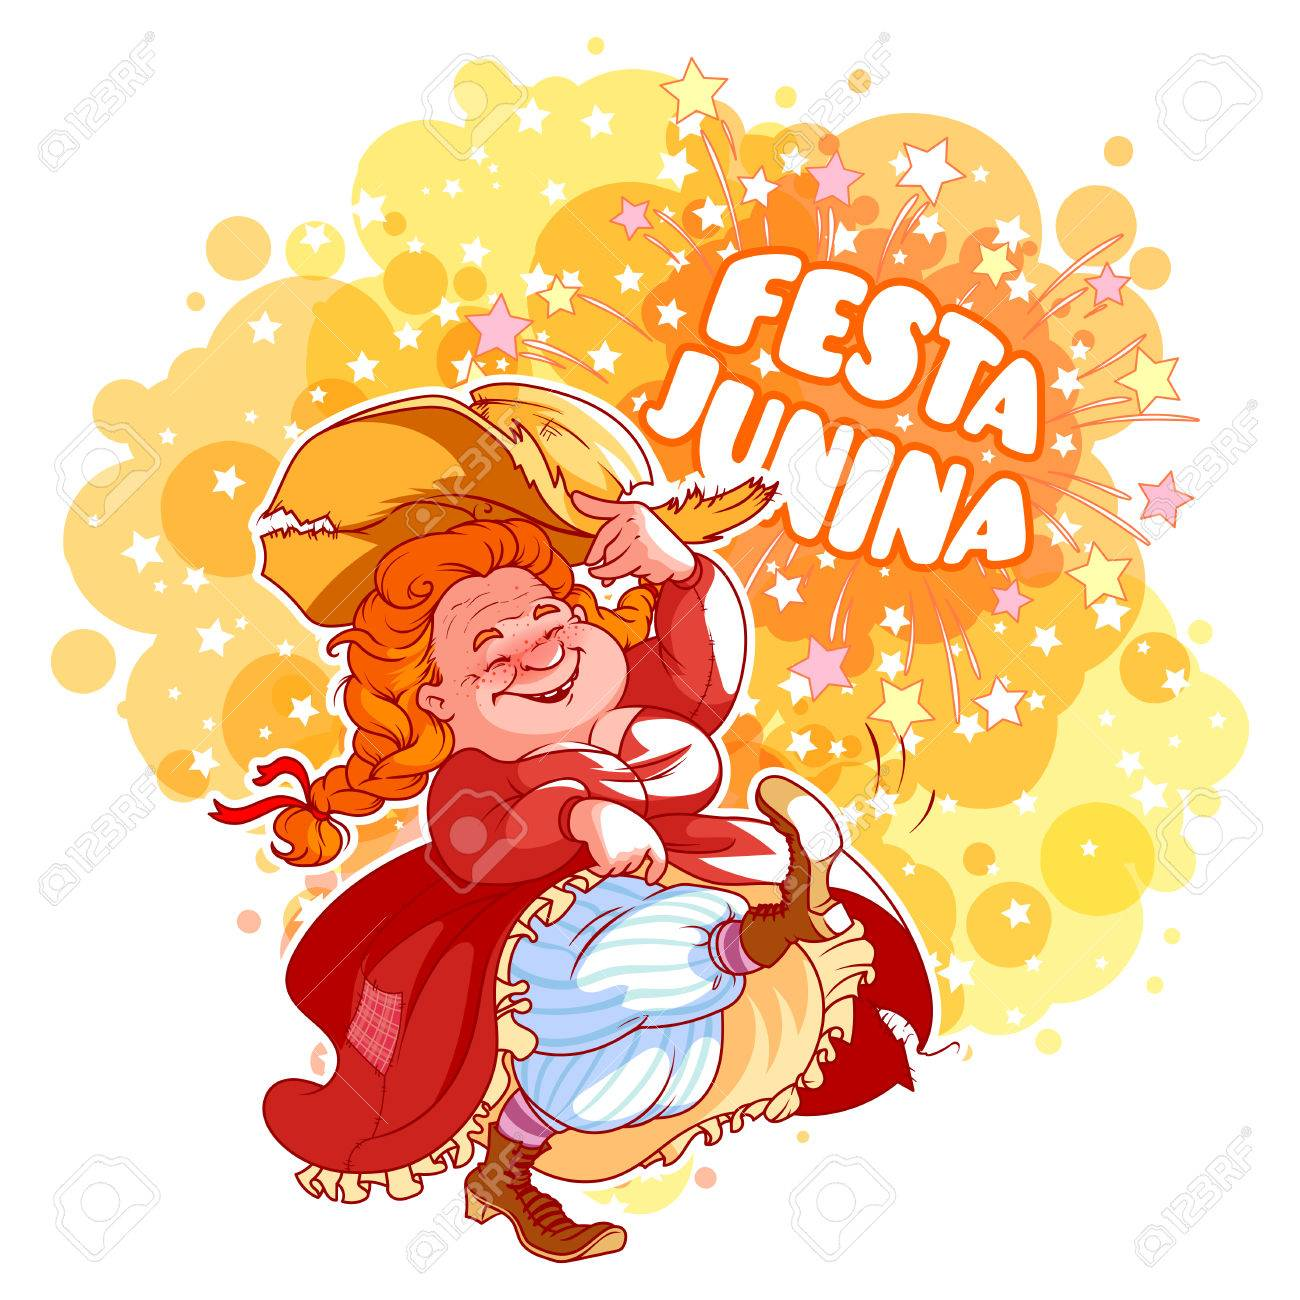 Greeting card for june festival in brazil dancing old lady in greeting card for june festival in brazil dancing old lady in red dress vector m4hsunfo